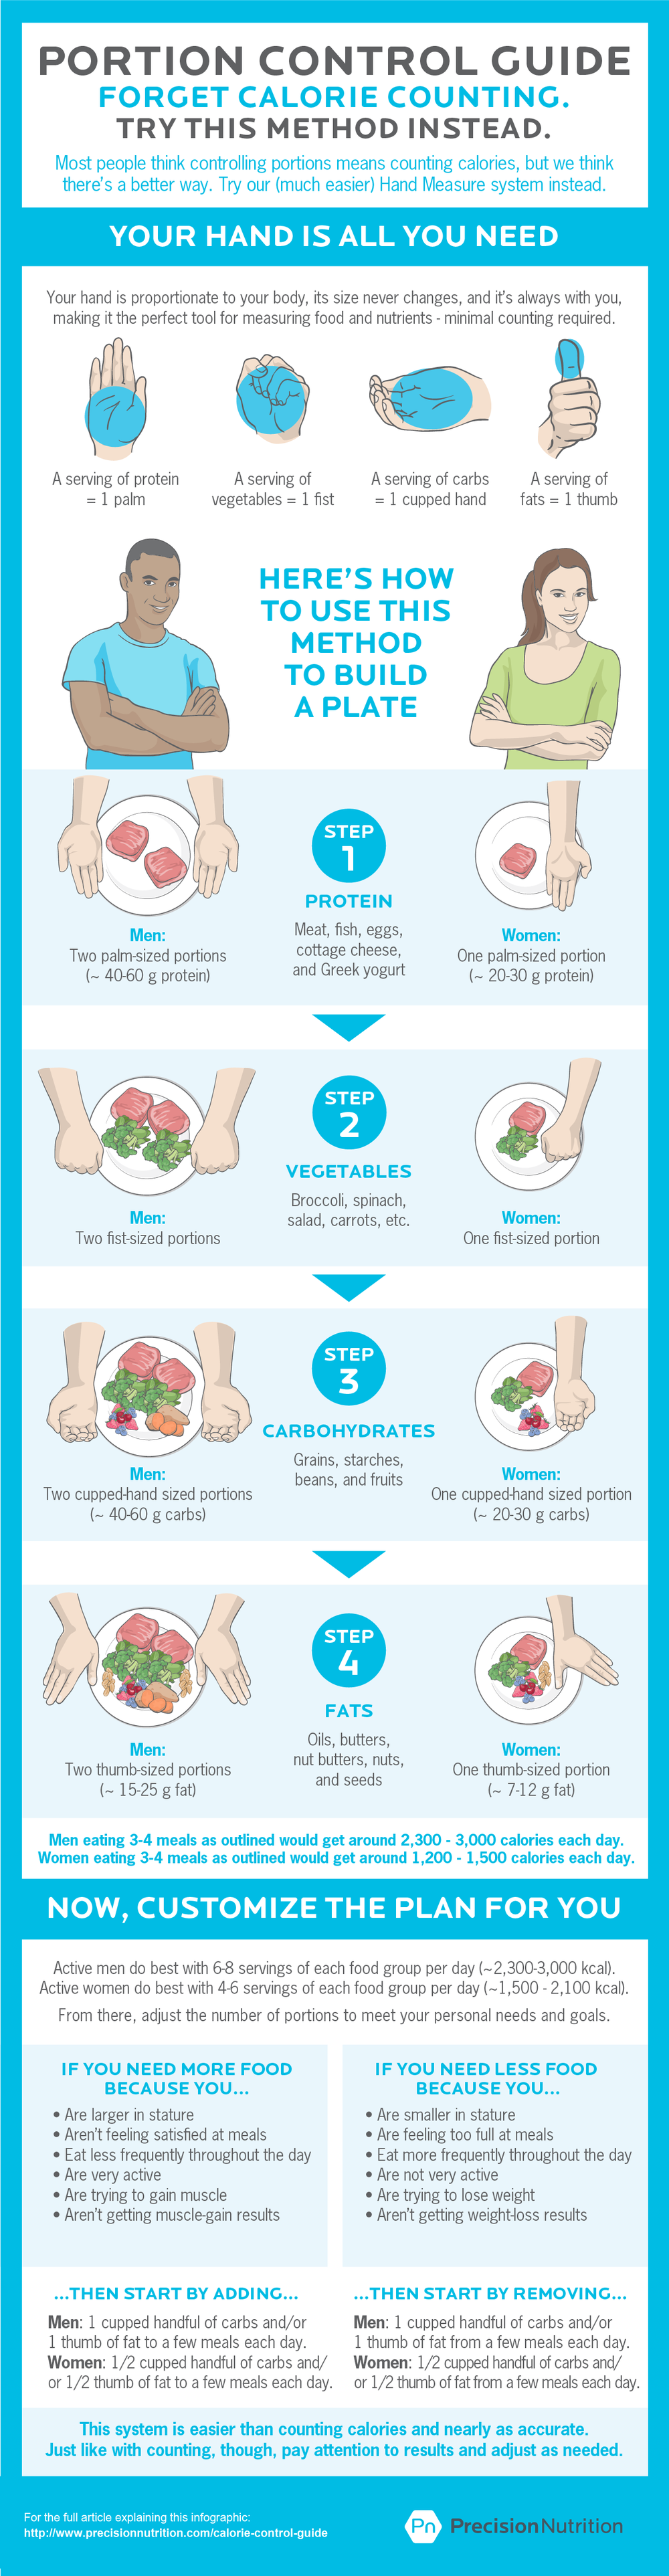 PN Calorie Control Guide from CFGE infographic.png